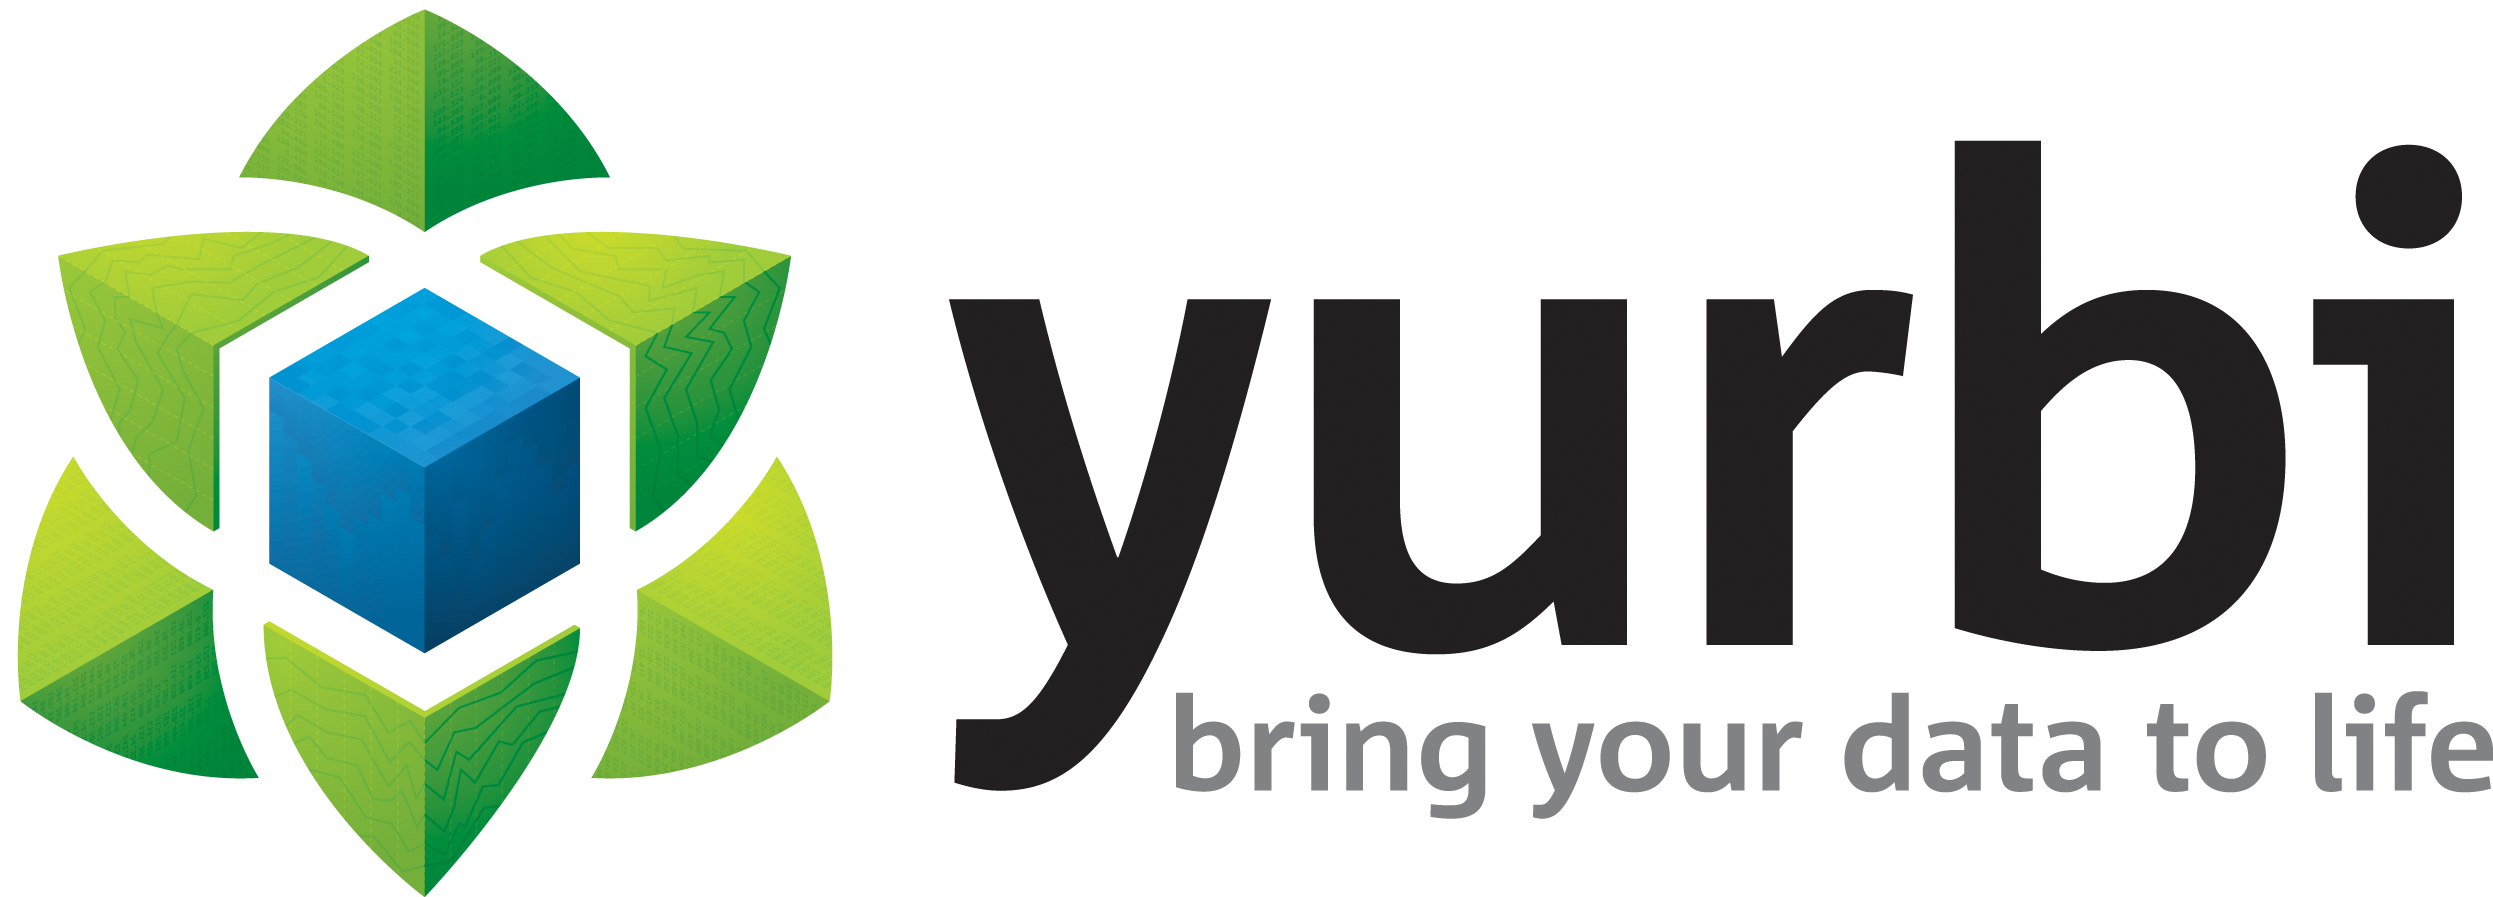 Yurbi - Bring Your Data to Life